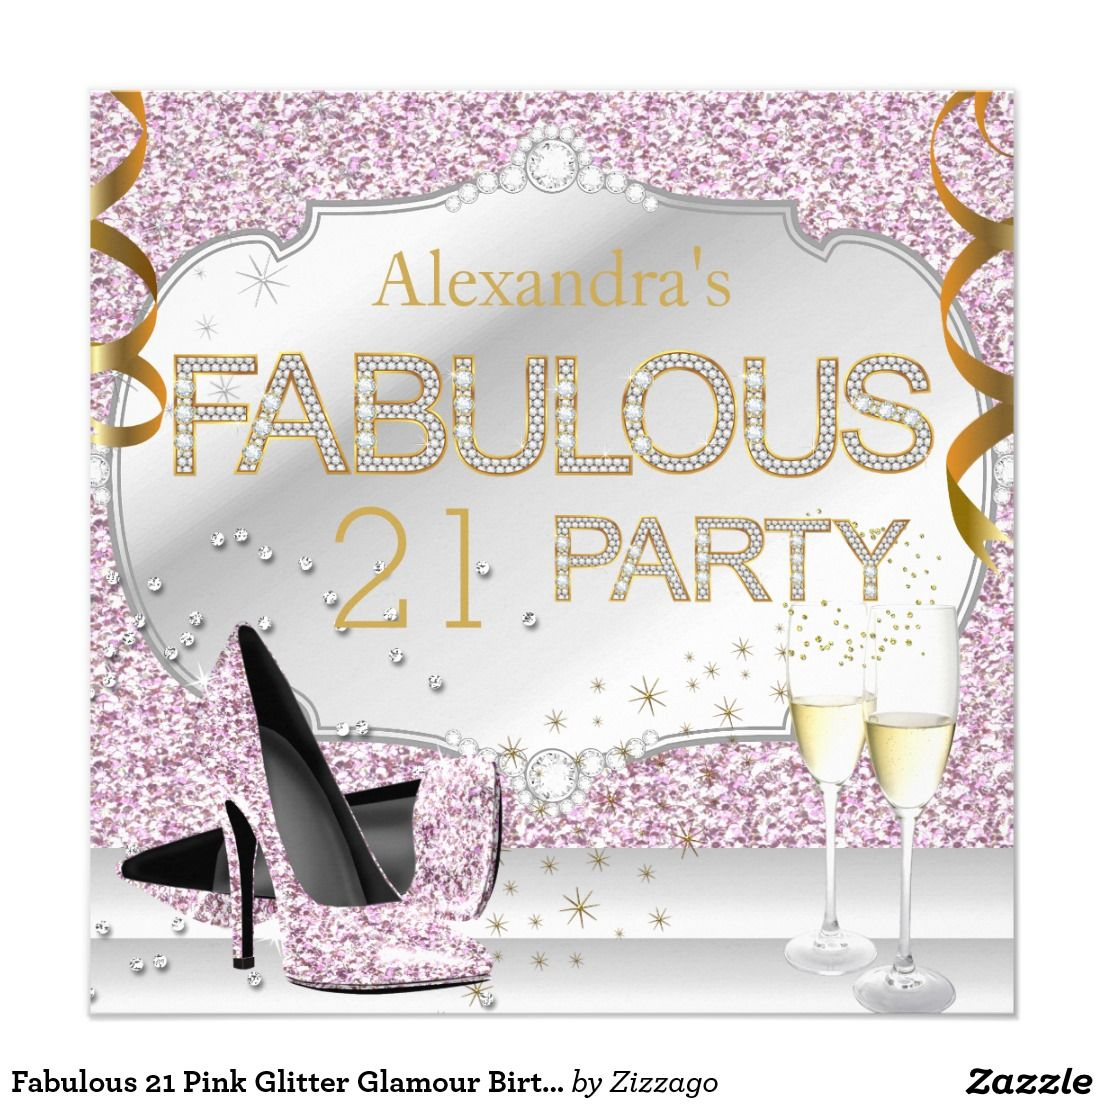 Fabulous 21 Pink Glitter Glamour Birthday Party Card Pink Glitter